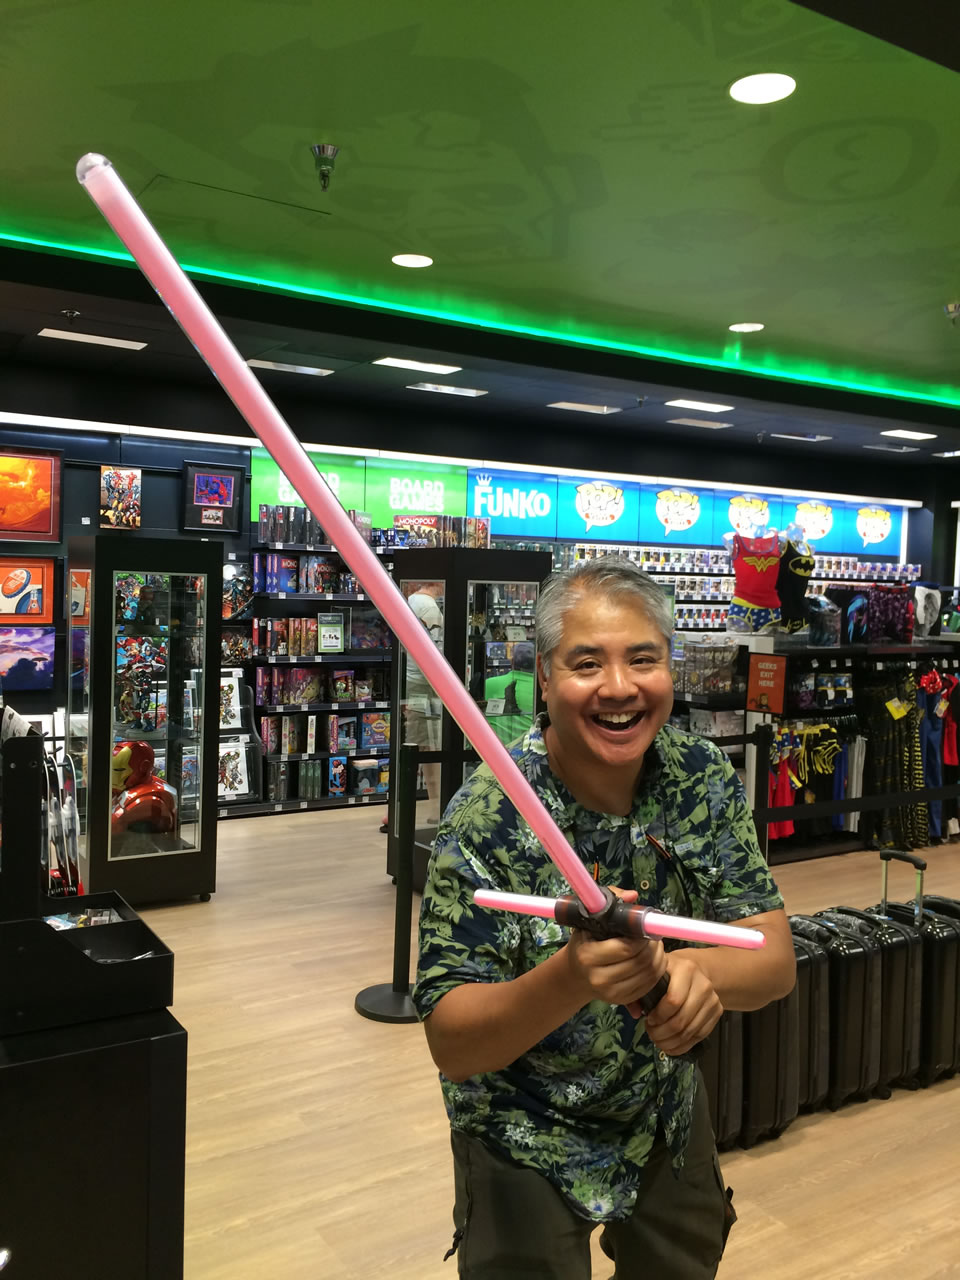 25 thinkgeek store - joey and kylo ren lightsaber